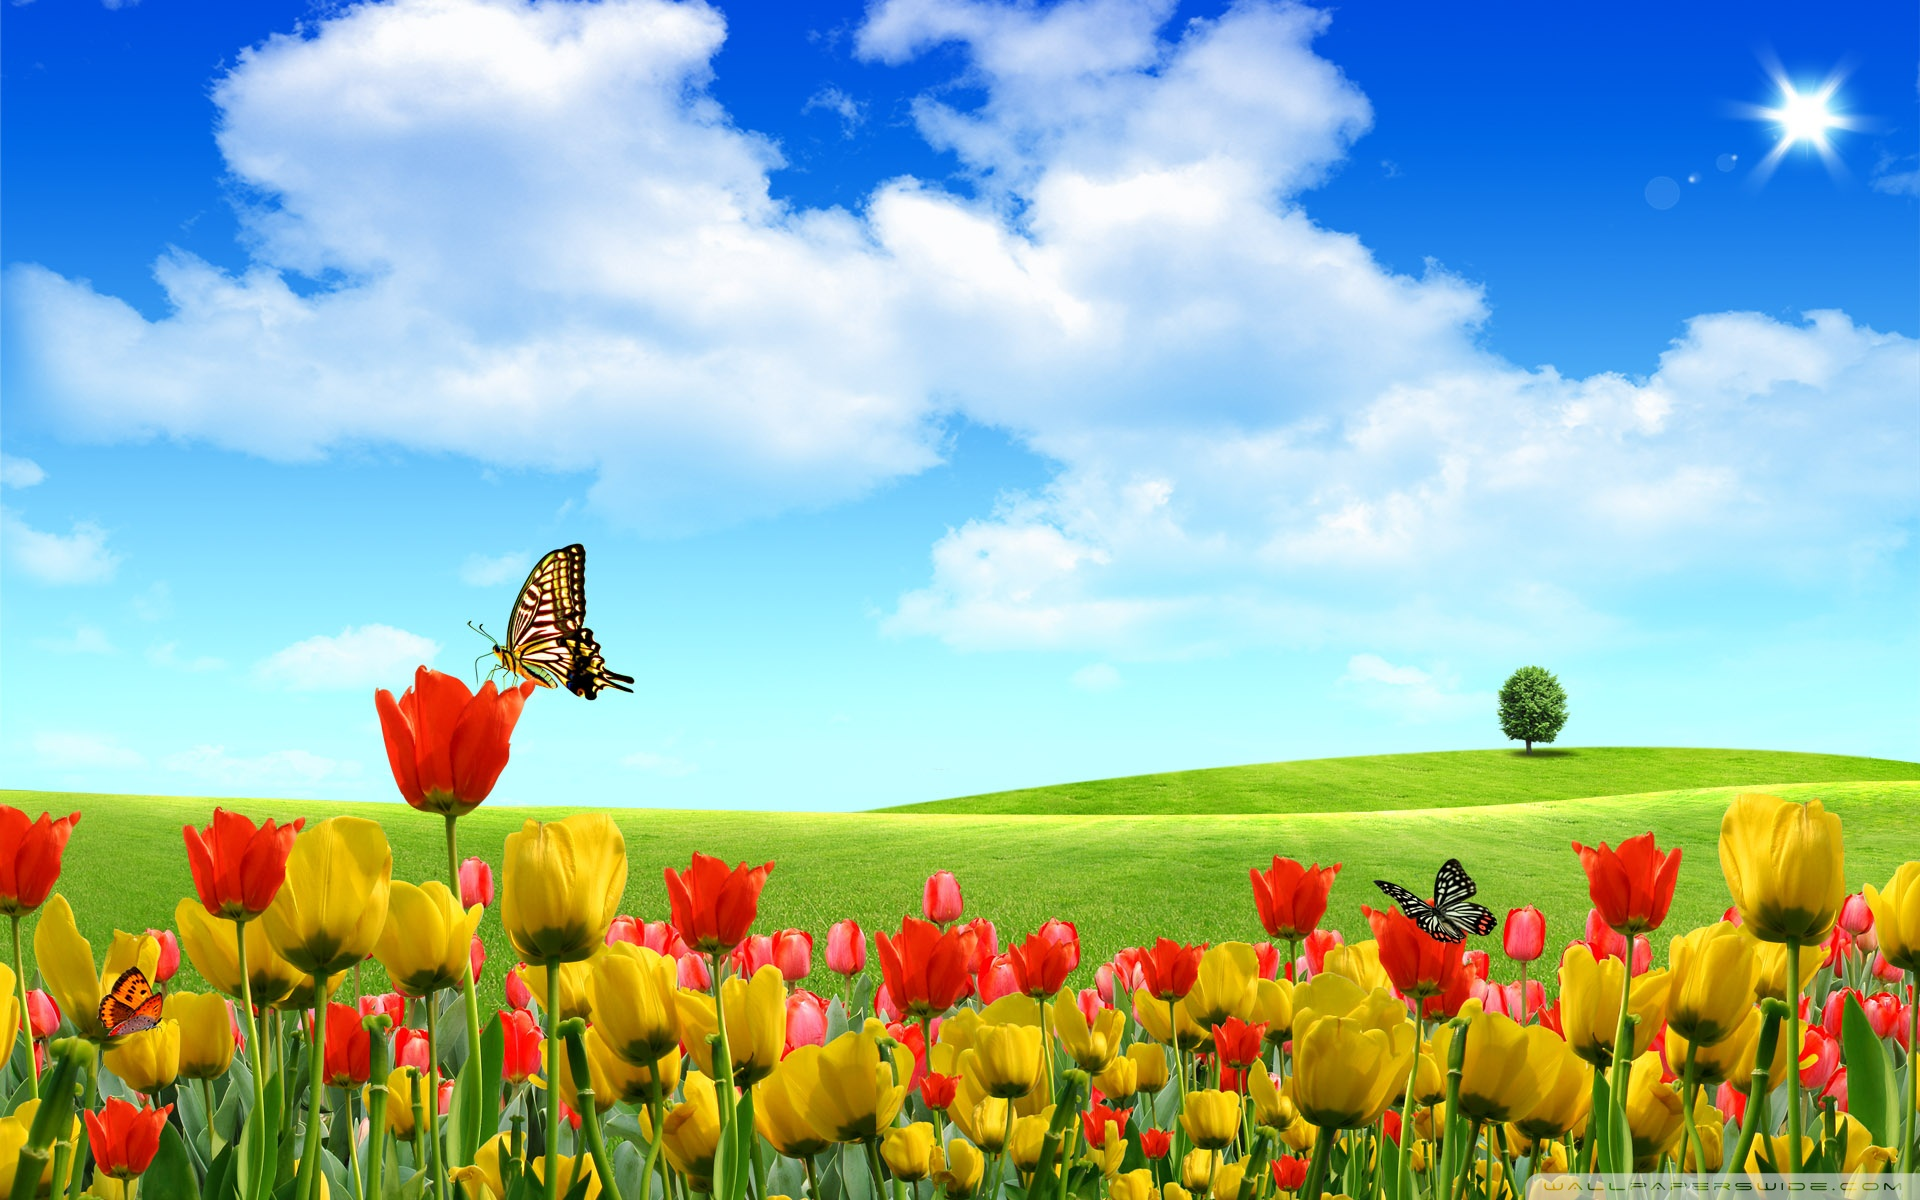 Hd wallpaper spring - Spring Spring Wallpaper Hd Spring Pictures Nature Backgrounds